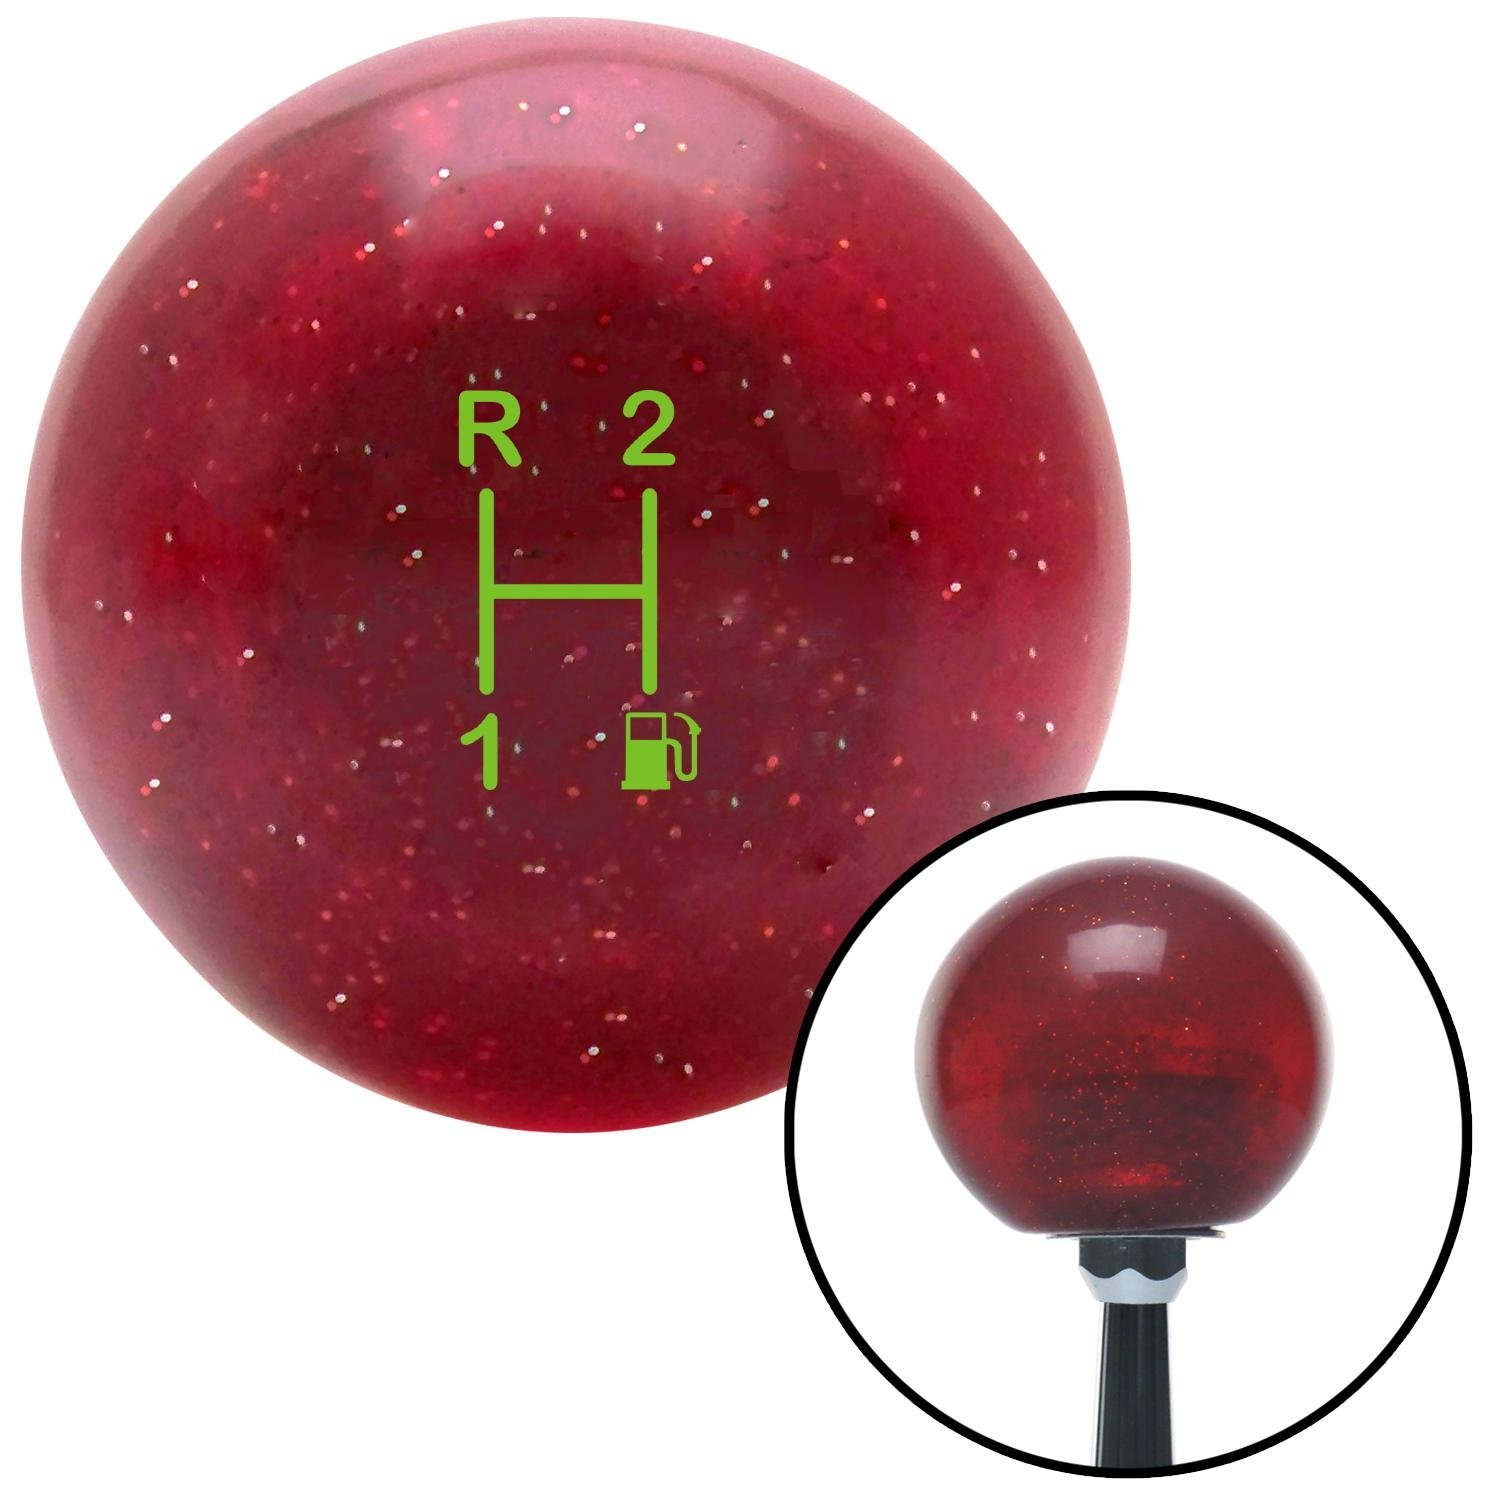 American Shifter 282794 Shift Knob Green 3 Speed Shift Pattern - Gas 11 Red Metal Flake with M16 x 1.5 Insert